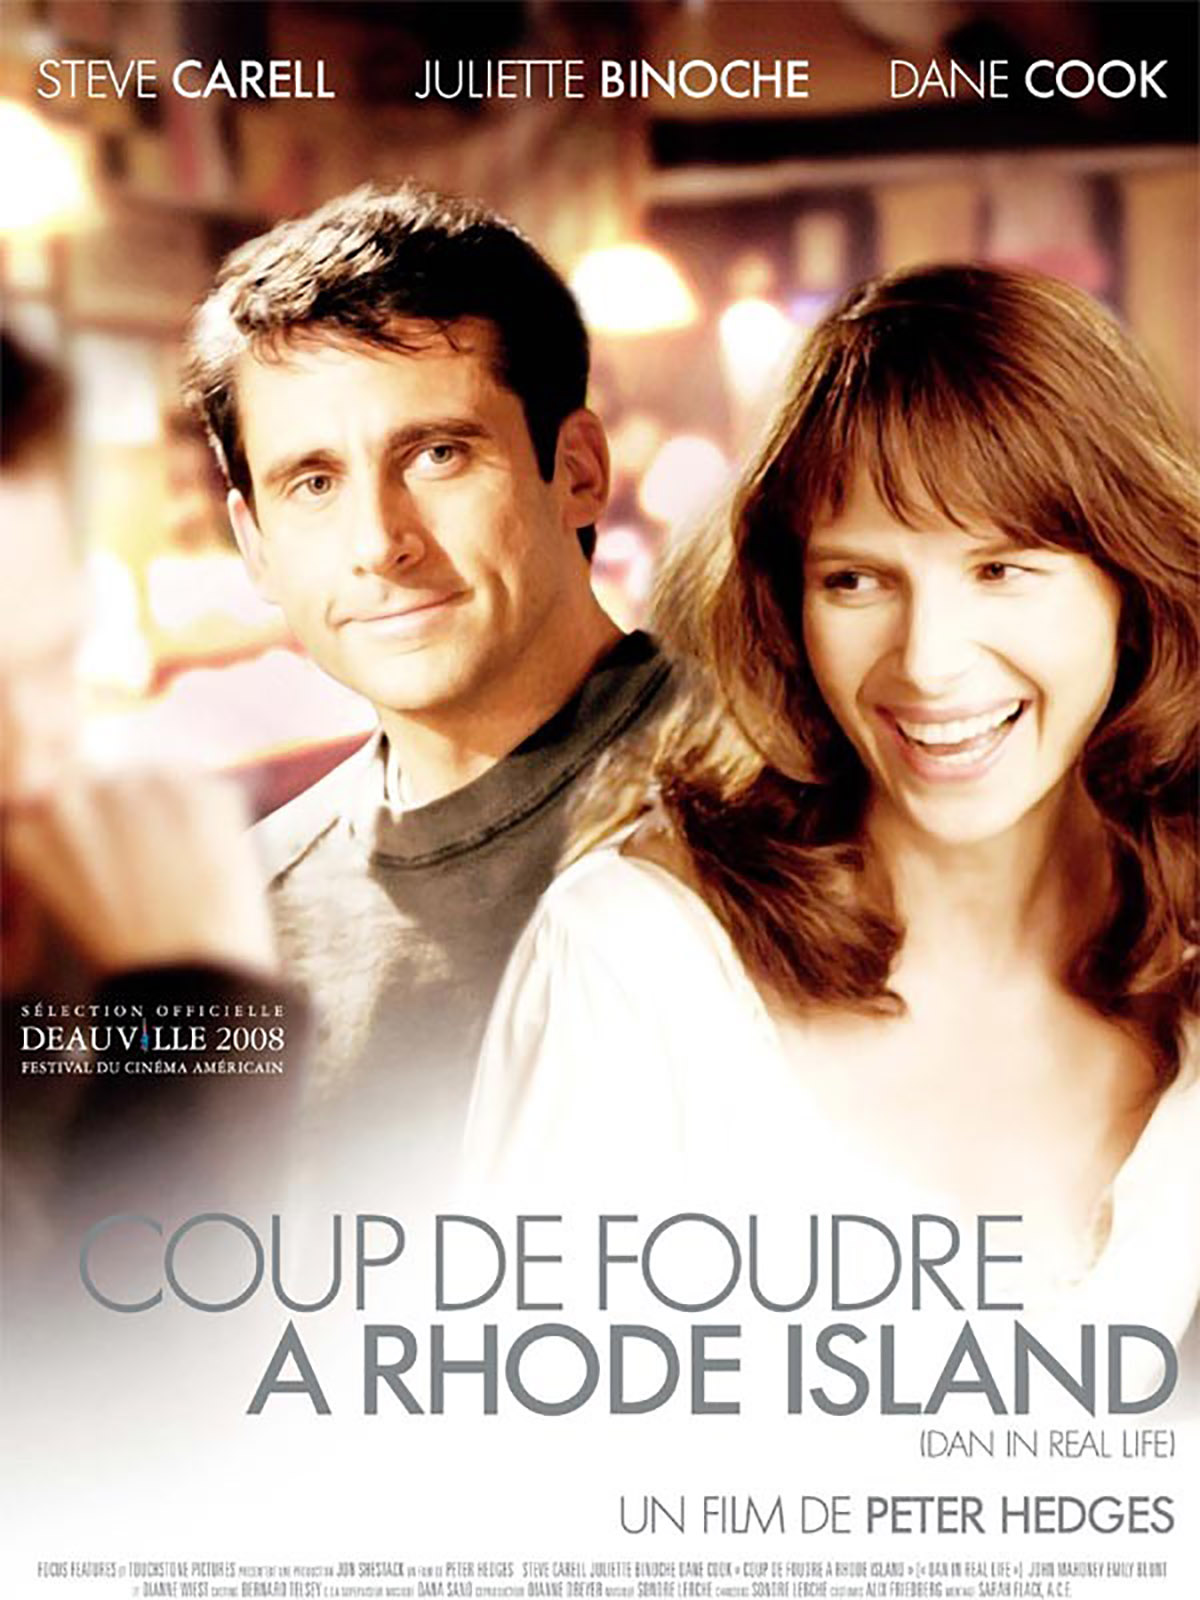 Affiche Poster coup foudre rhode island dan real life disney touchstone